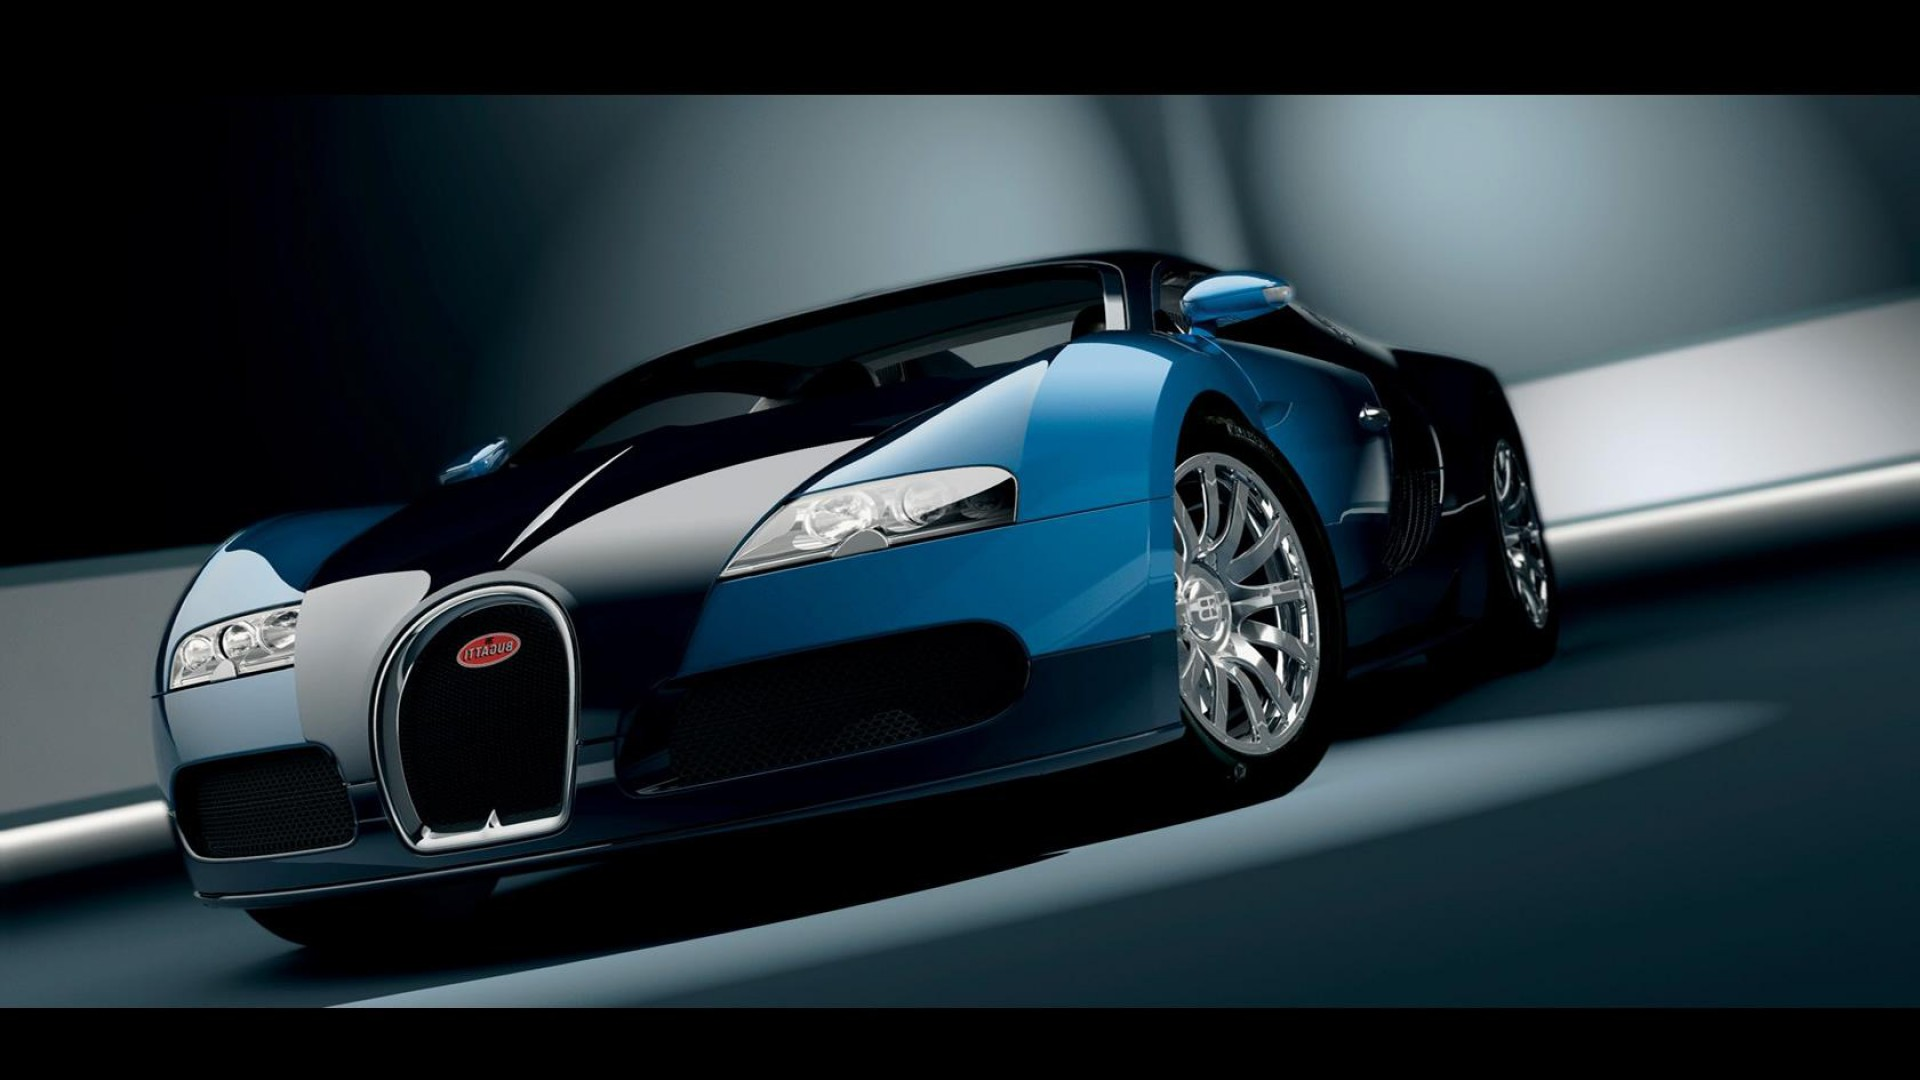 Bugatti Cars Wallpapers 1080p Bugatti Iphone Wallpaper Hd: 50 Cool Bugatti Wallpapers/Backgrounds For Free Download